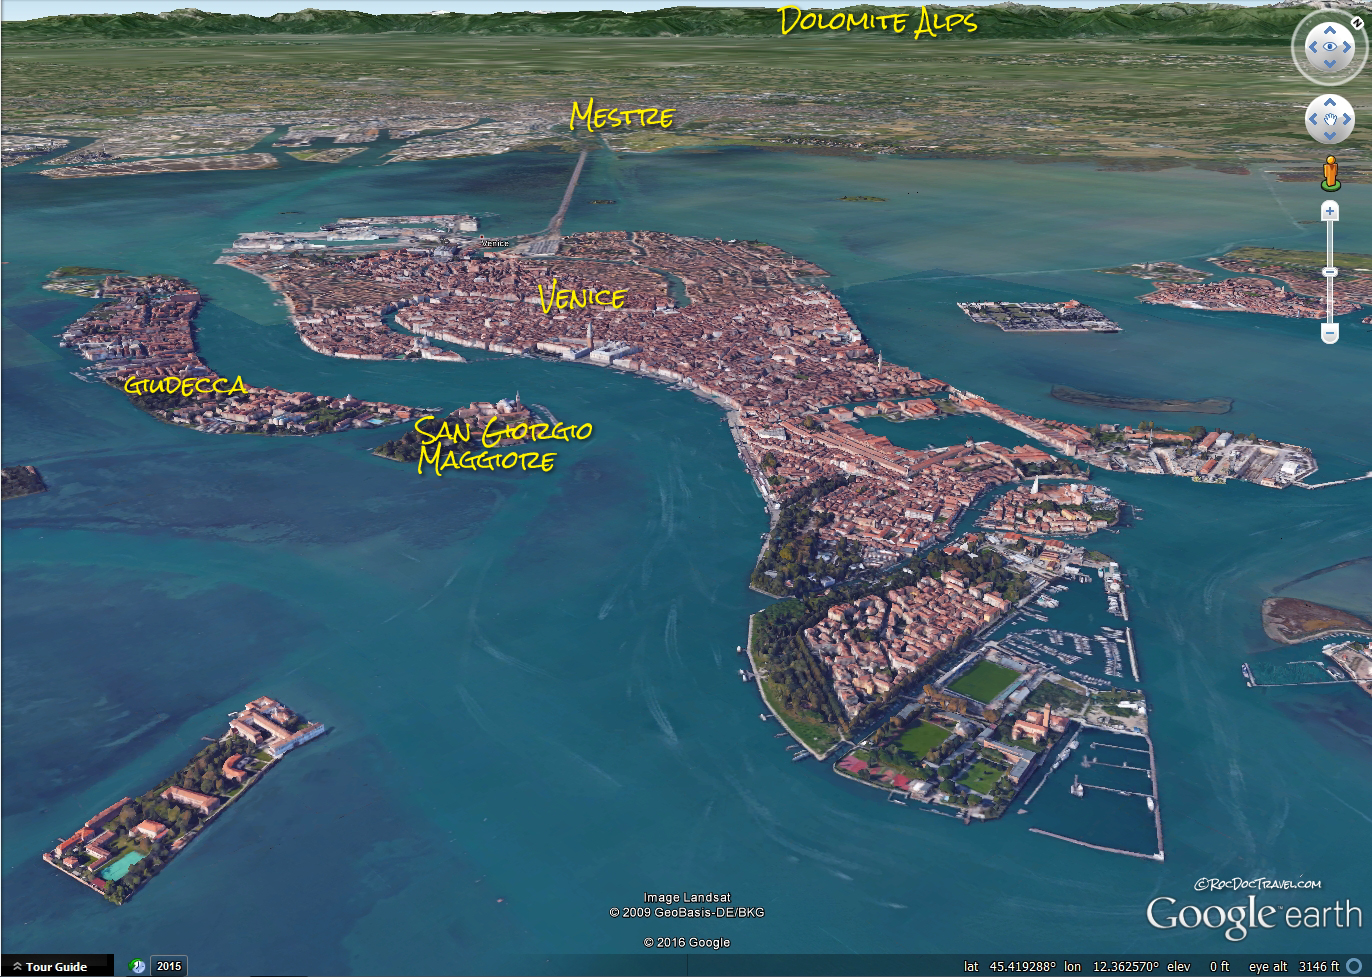 Venice Italy island subsidence flood control Mose project geology science nature explore adventure Europe travel trip copyright rocdoctravel.com